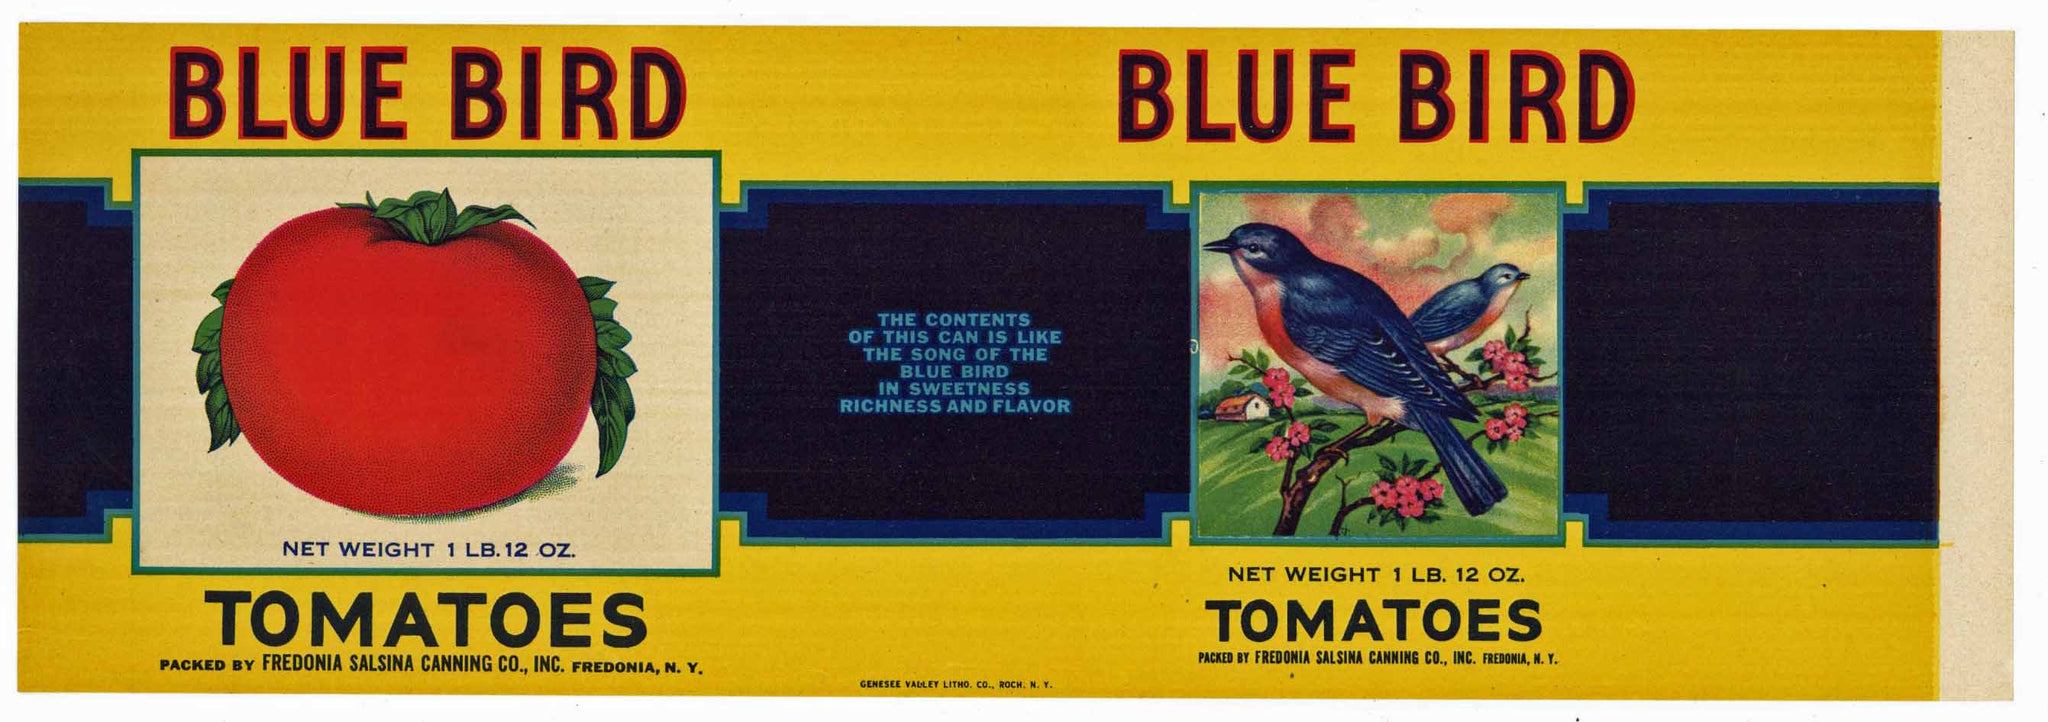 Blue Bird Brand Vintage Fredonia New York Tomato Can Label